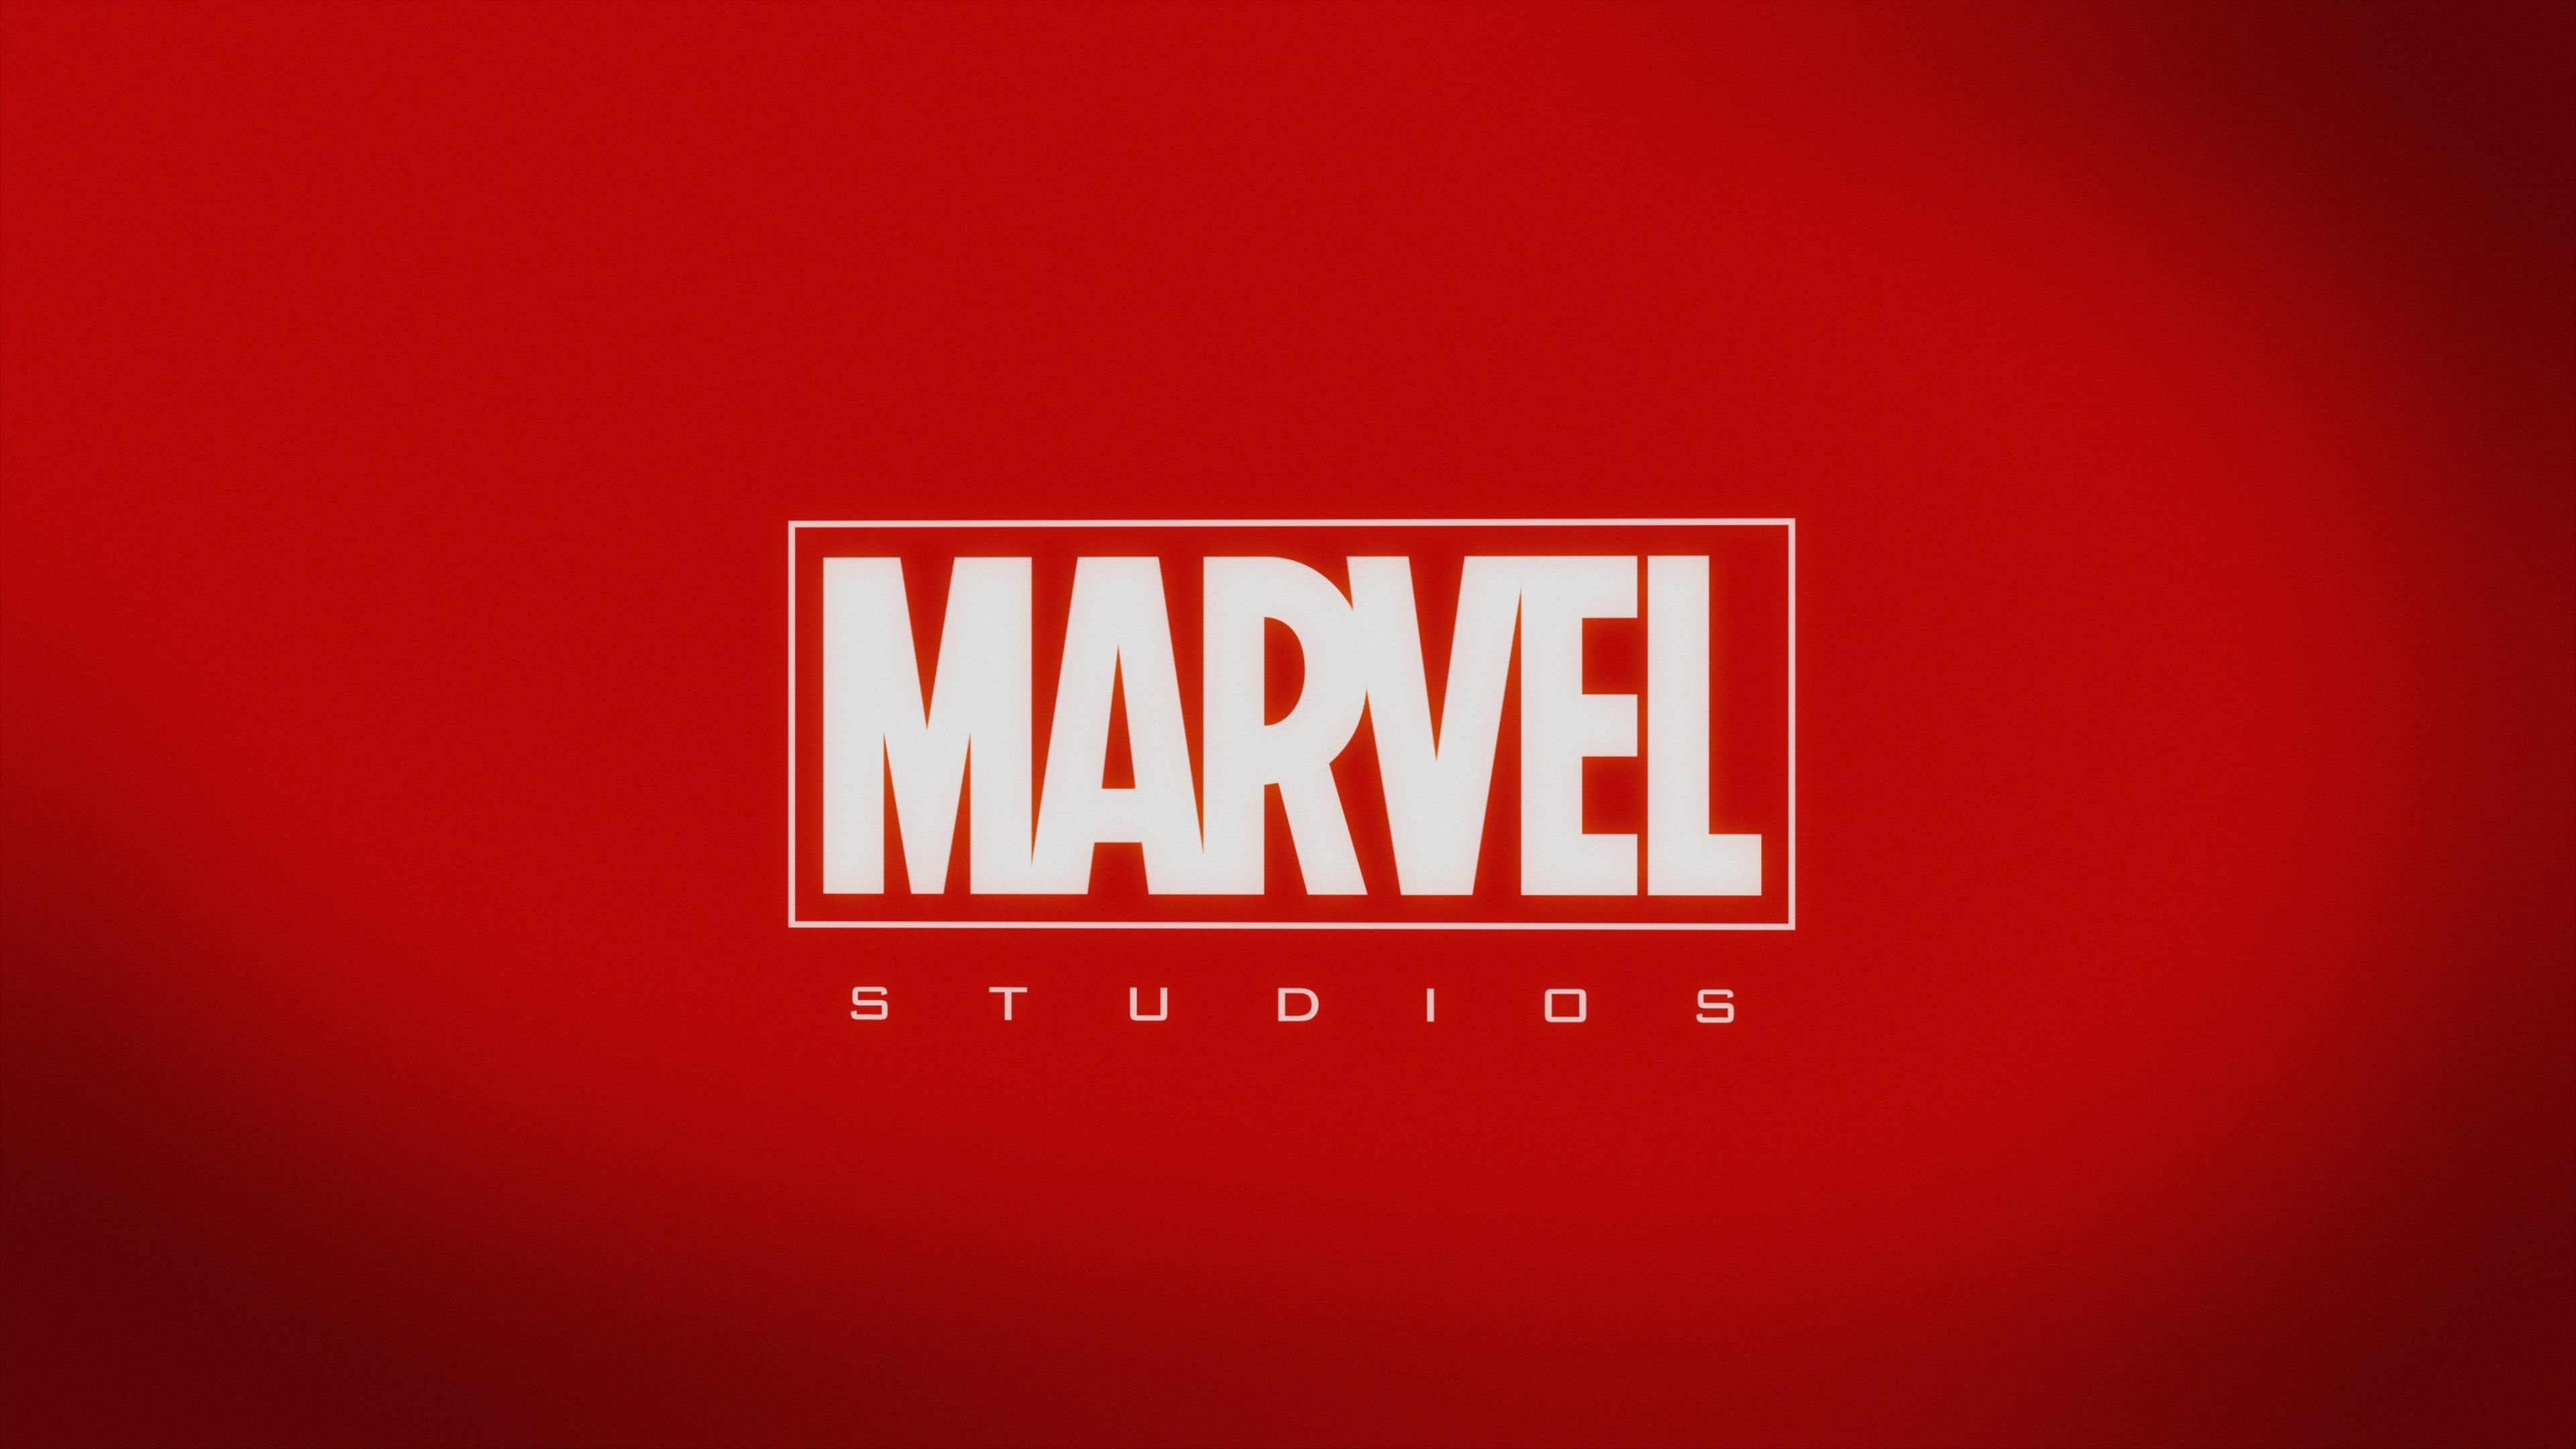 Filename 3840x2160 Marvel Studios 4k Wallpaper Pc Background Resolution 3840x2160 File Size 1168 Kb Upl In 2020 Marvel Studios Marvel Studios Logo Marvel Television